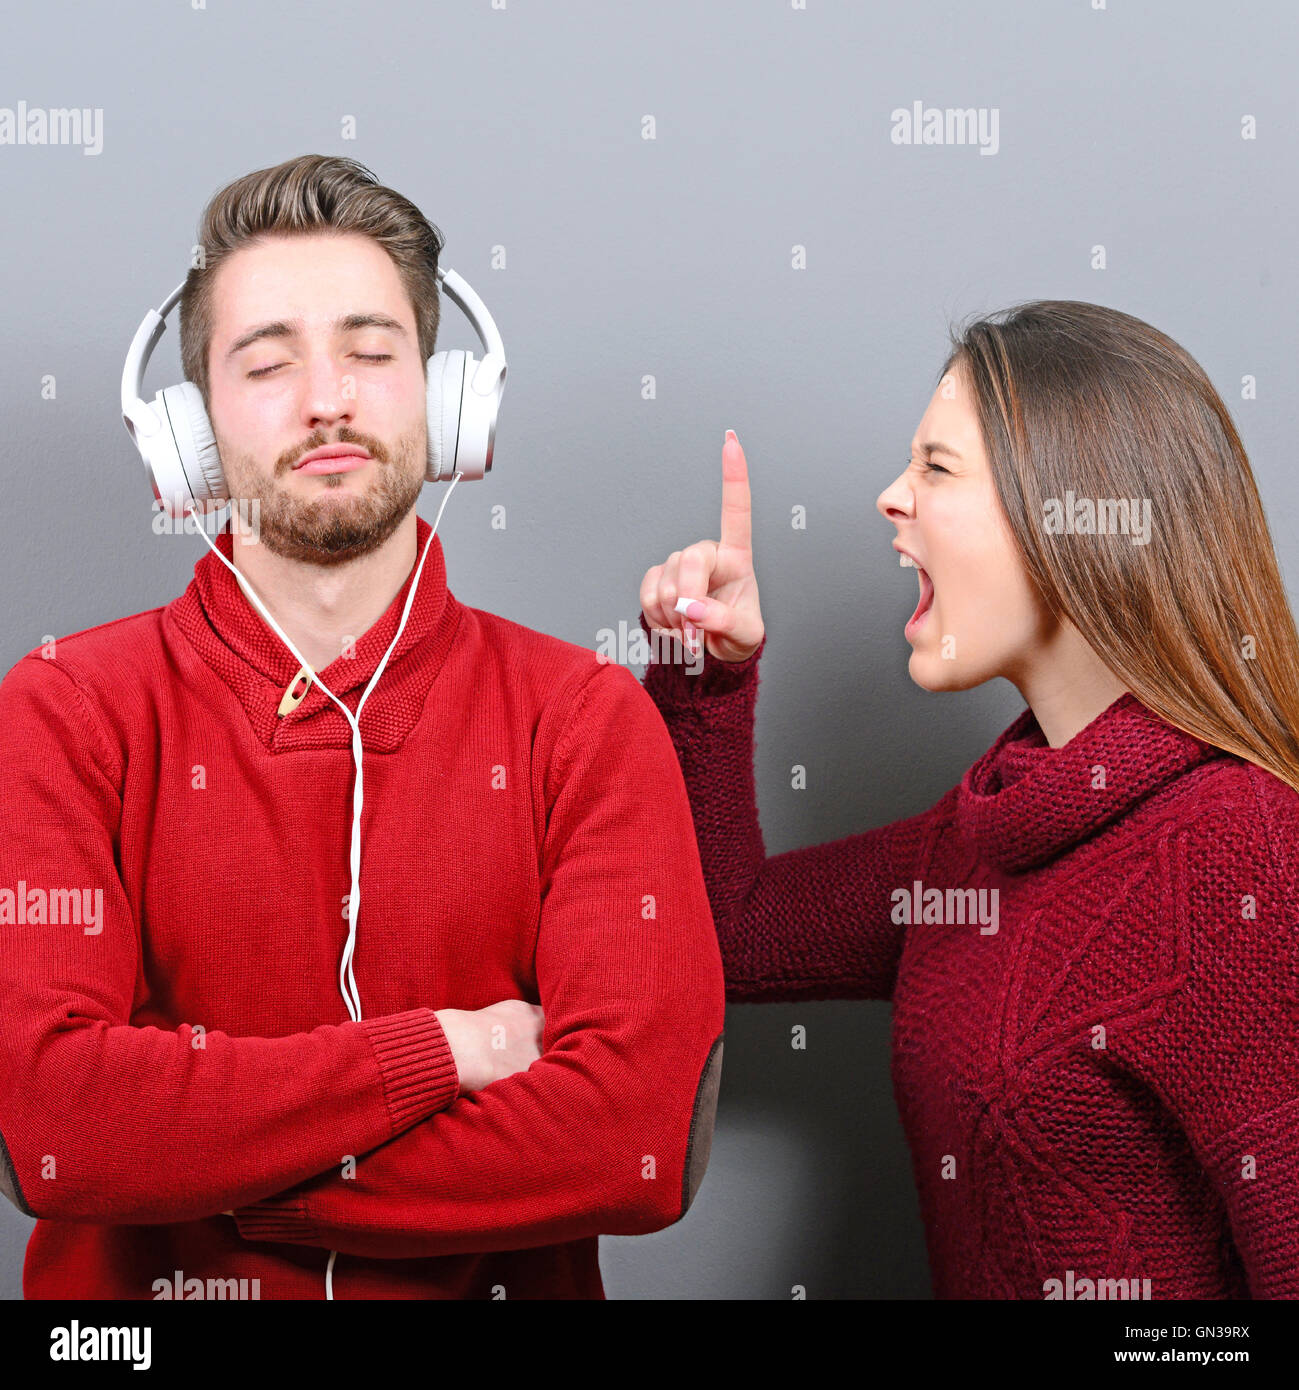 Man listening to music and doesnt care about her screaming at him - Stock Image